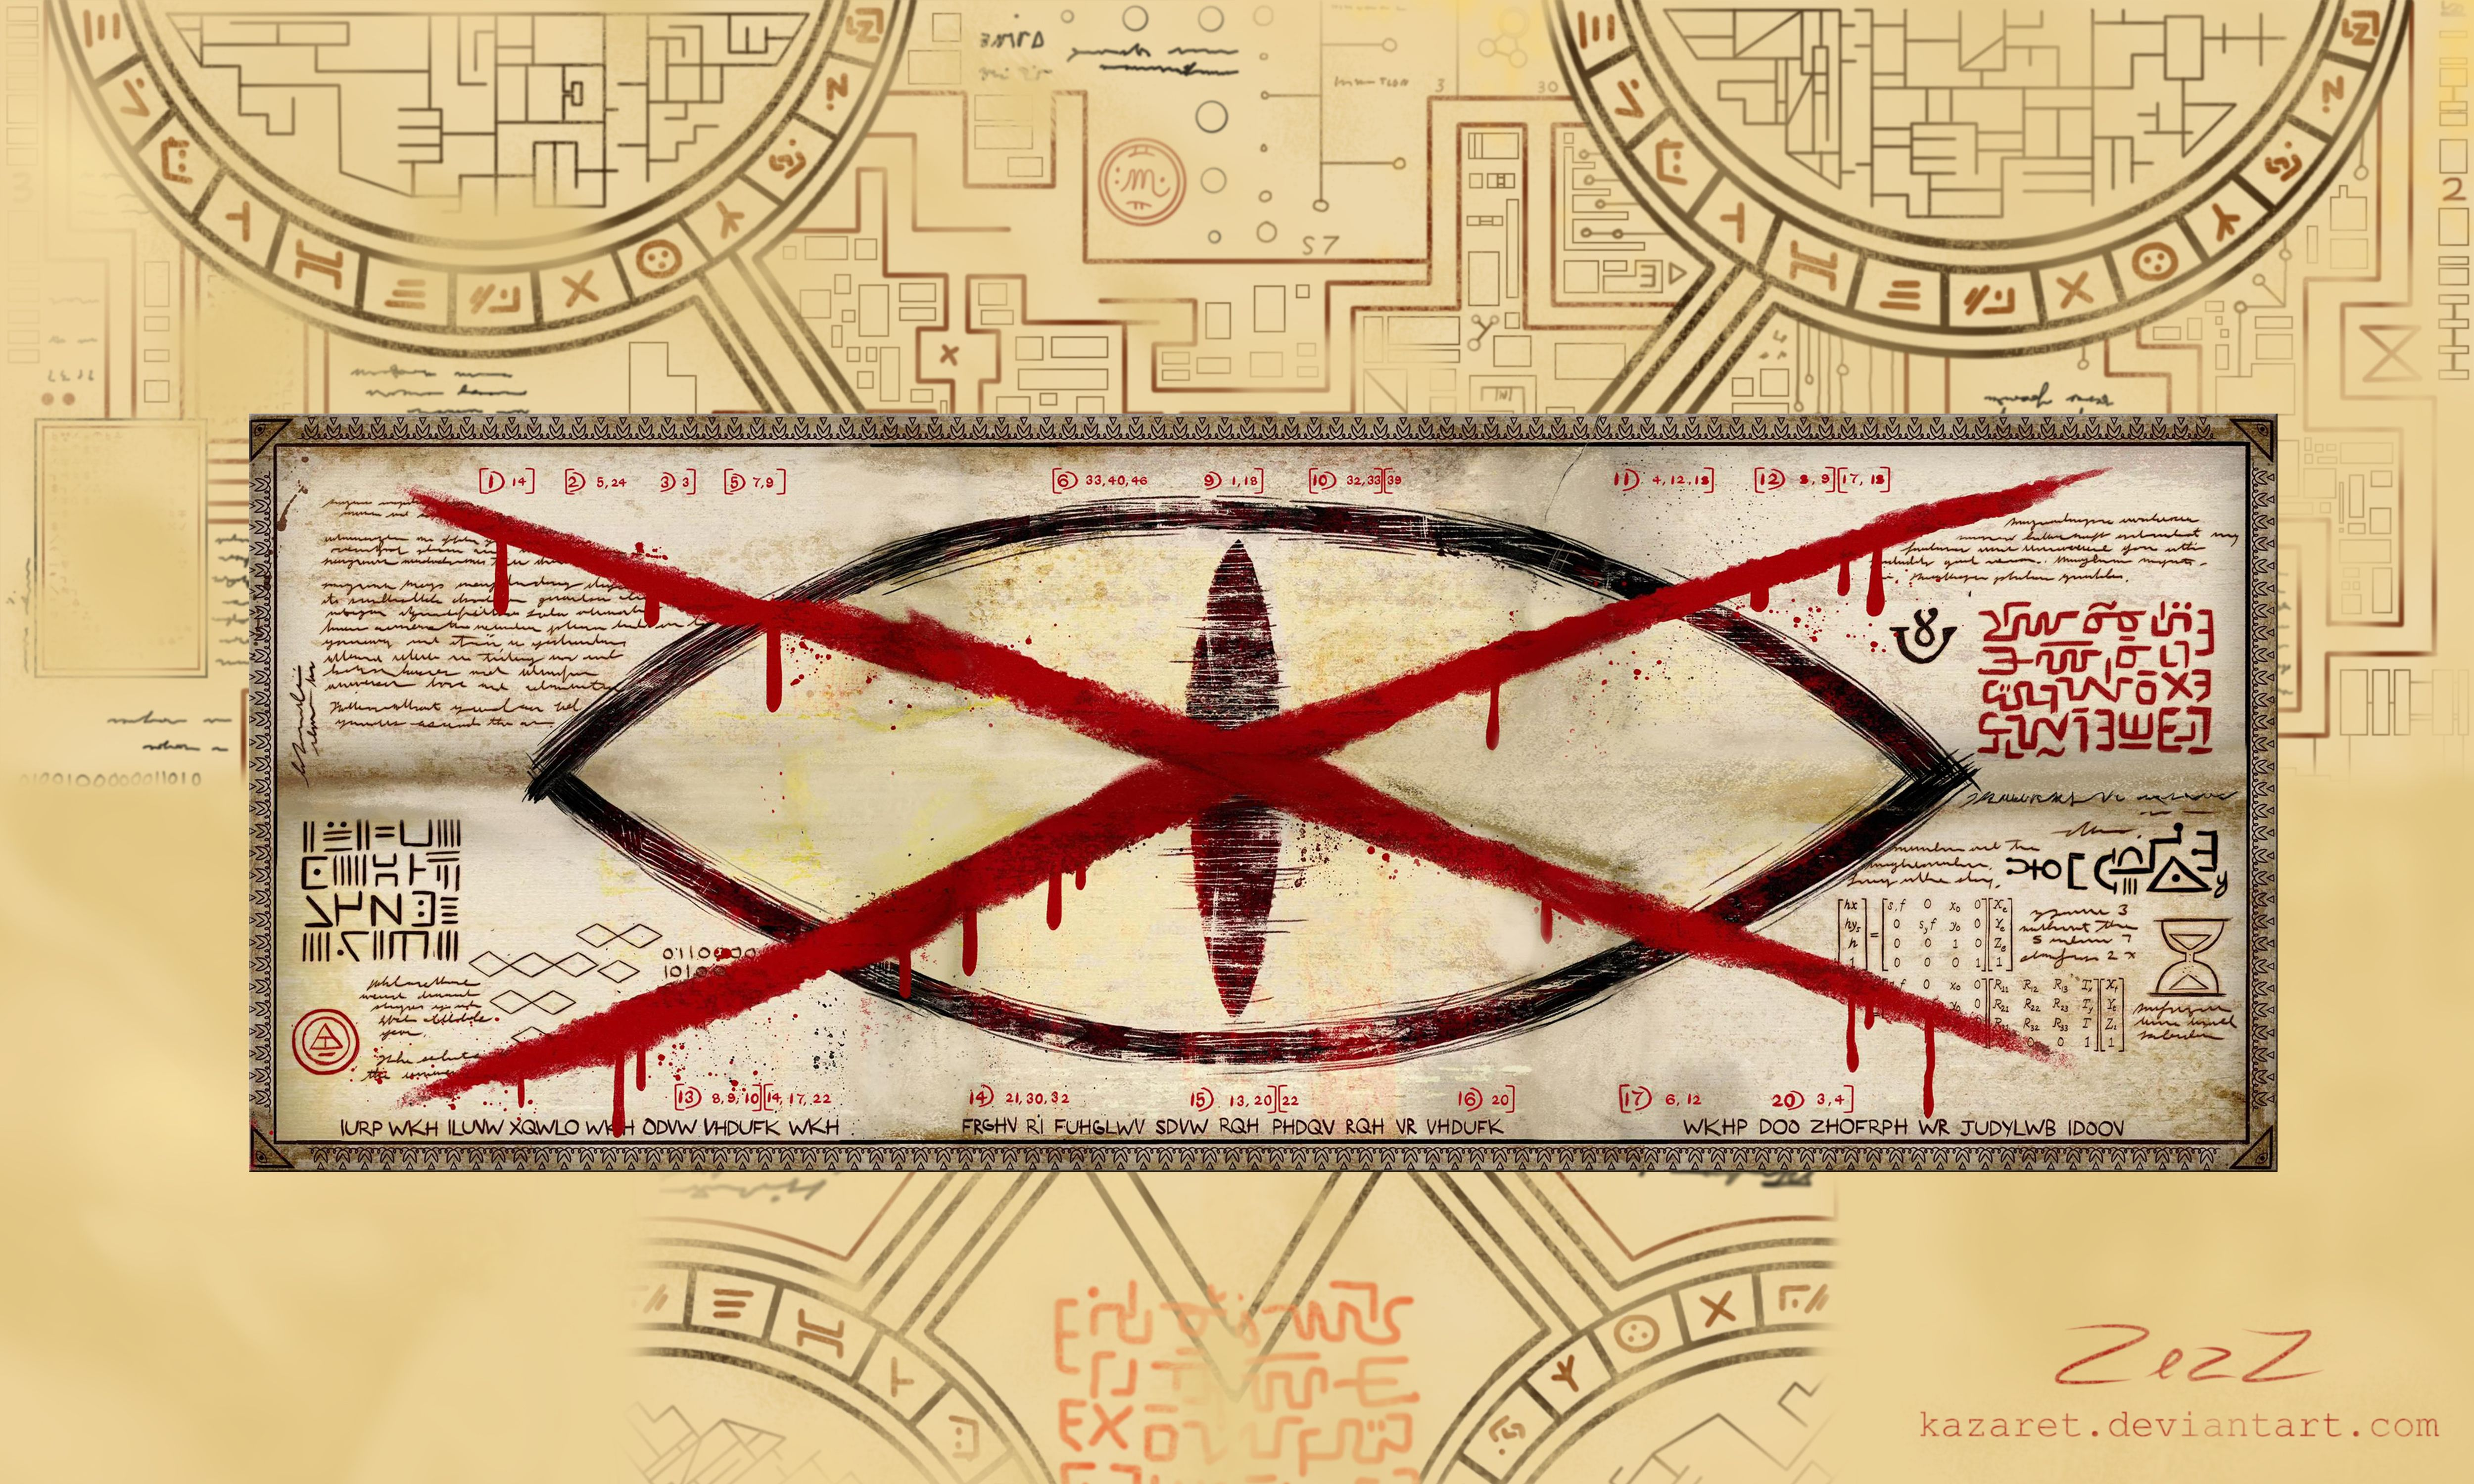 Gravity falls dippers guide to the unexplain 1 by kazaret on gravity falls dipper biocorpaavc